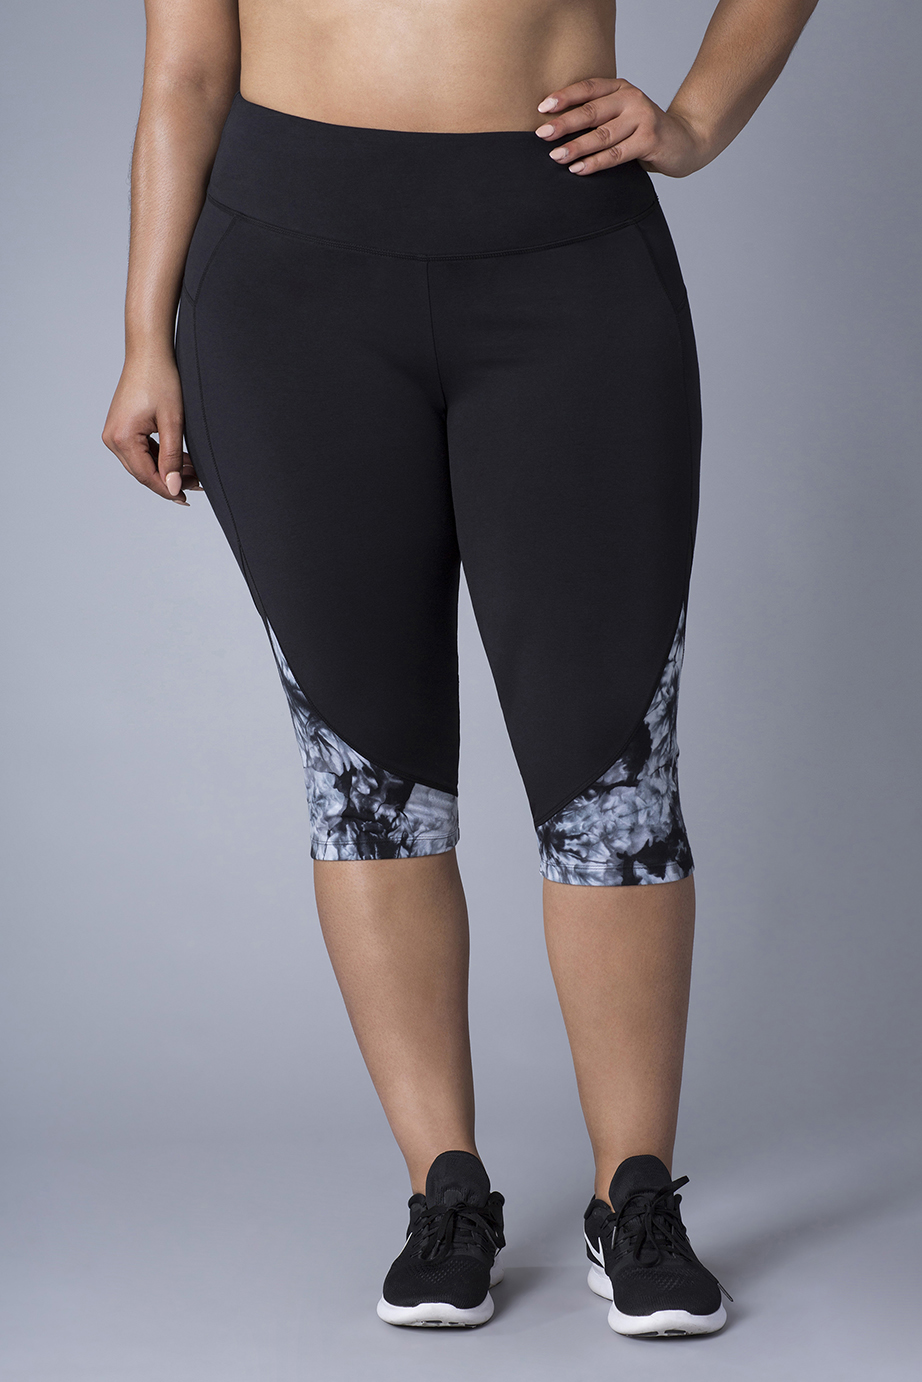 retouched woman, hand on hip, wearing black athletic capri leggings